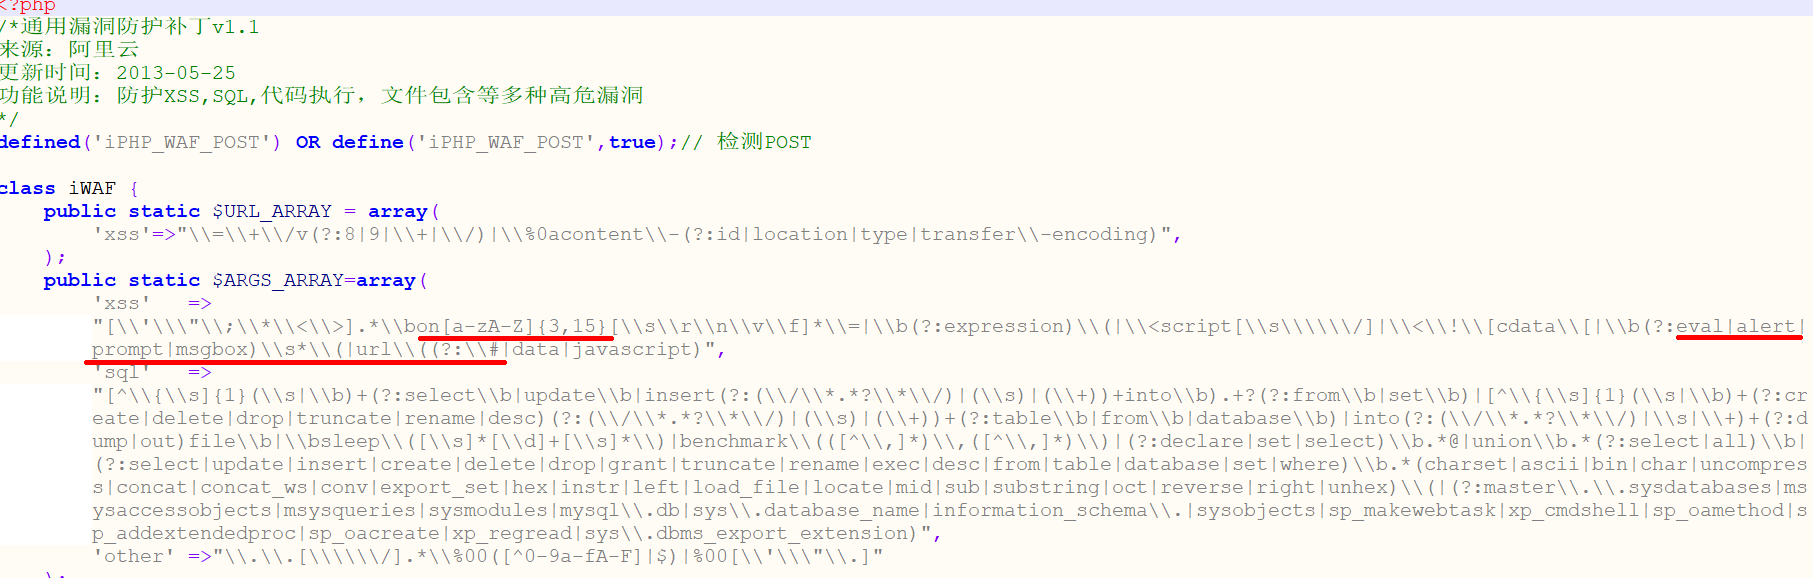 there is a XSS vuln can bypass waf · Issue #1 · TREYWANGCQU/LANKERS